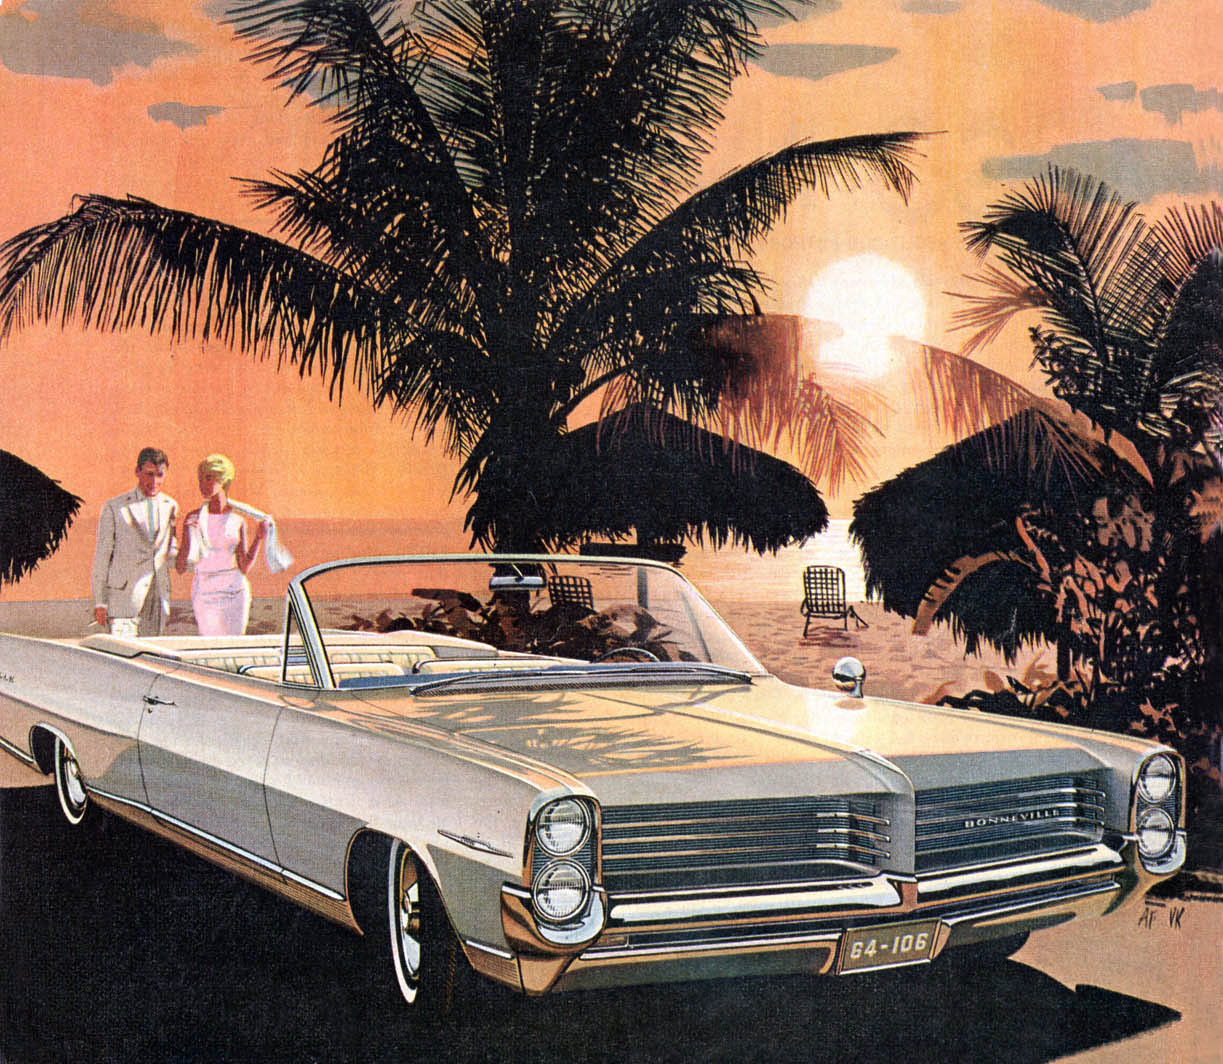 'Barbados Sunset'. 1964 Pontiac Bonneville convertible - mid '60s glamour by Fitzpatrick and Kaufman